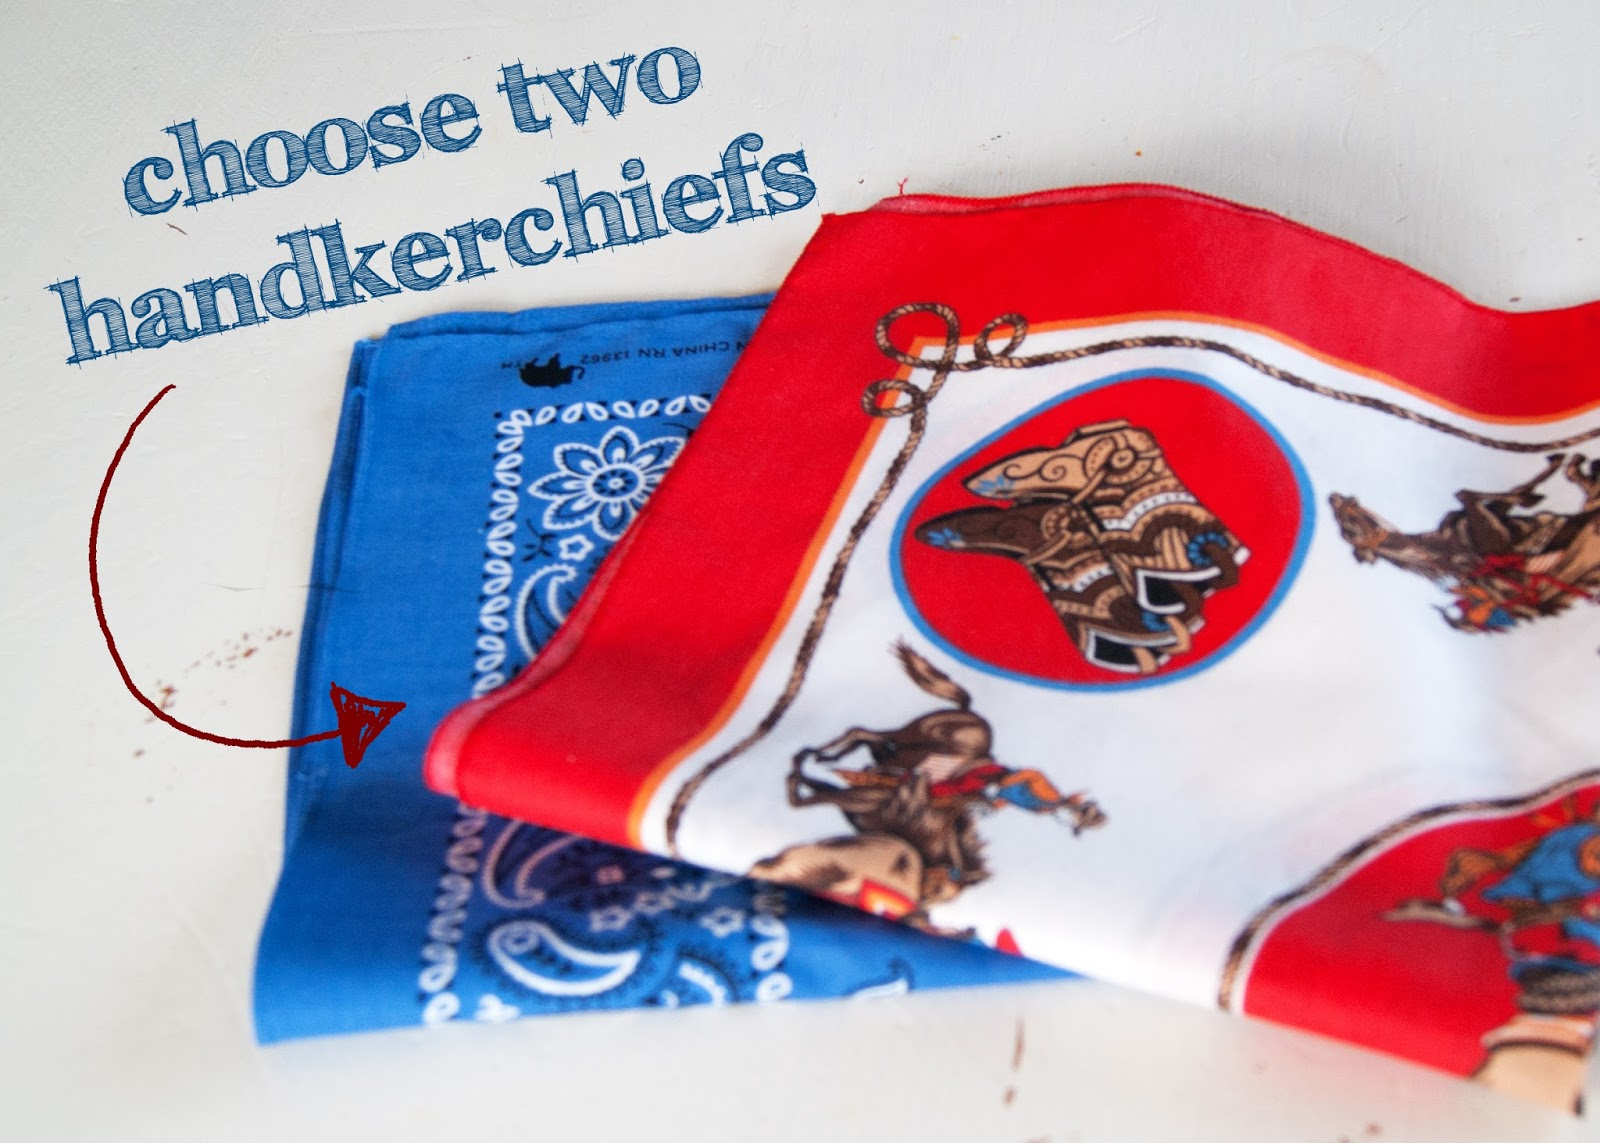 Step one : Choose two coordinating handkerchiefs